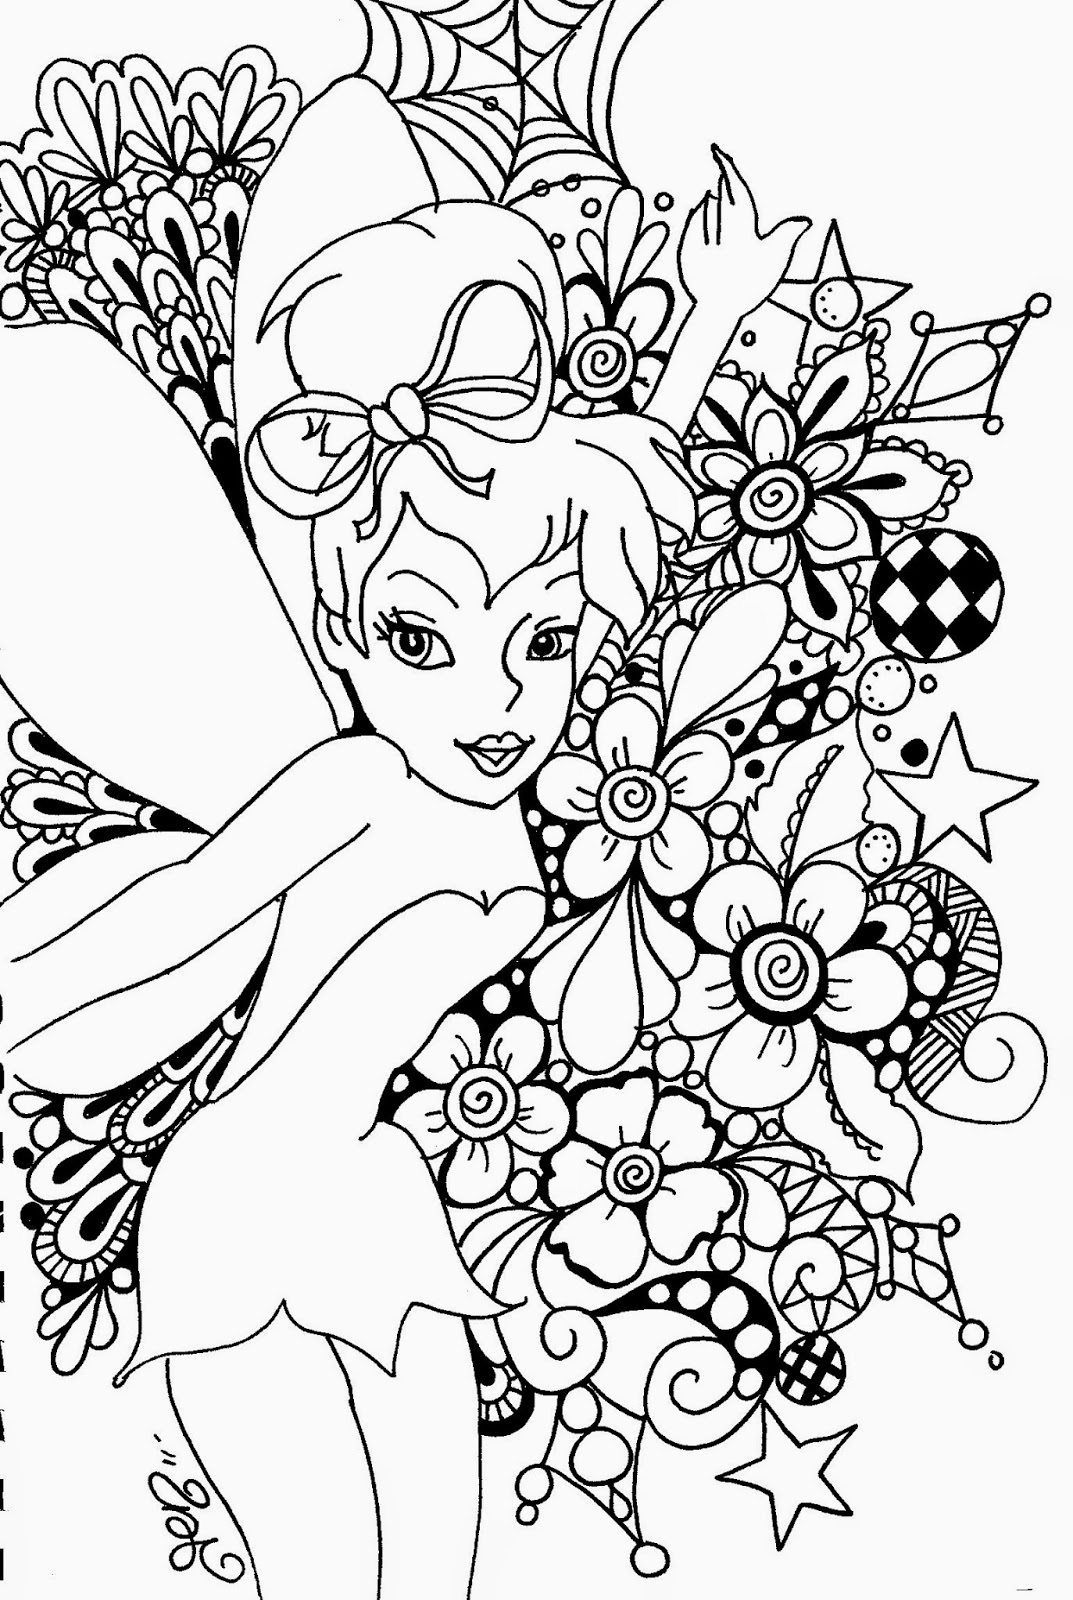 coloring pages tinkerbell coloring pages tinkerbell coloring pages and clip art coloring tinkerbell pages